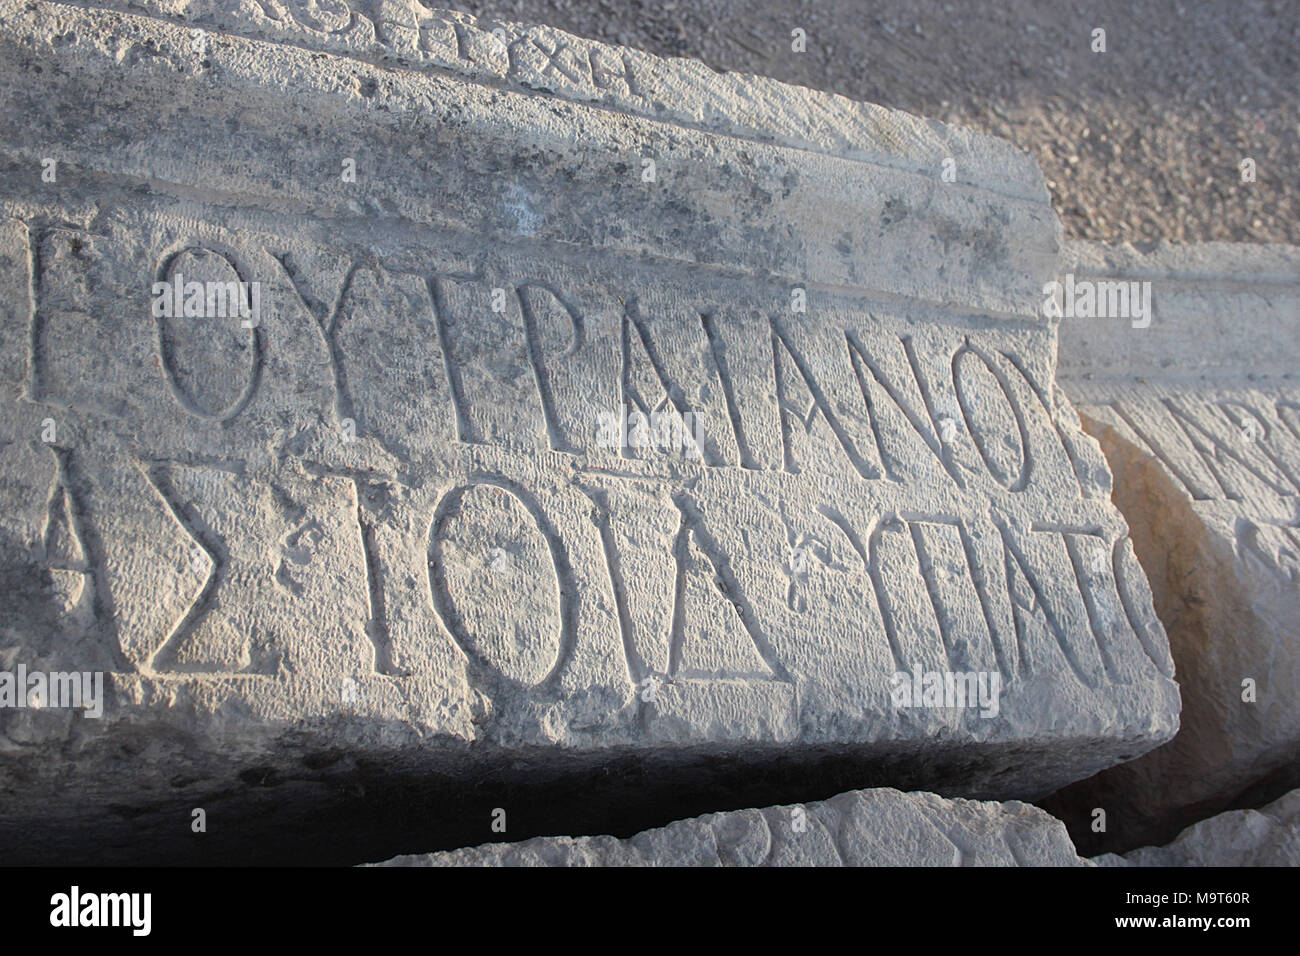 Inscription in the Greek alphabet at Jerash including Emperor Trajan's name. Trajan expanded the city's importance in AD106 by increasing its trade. - Stock Image